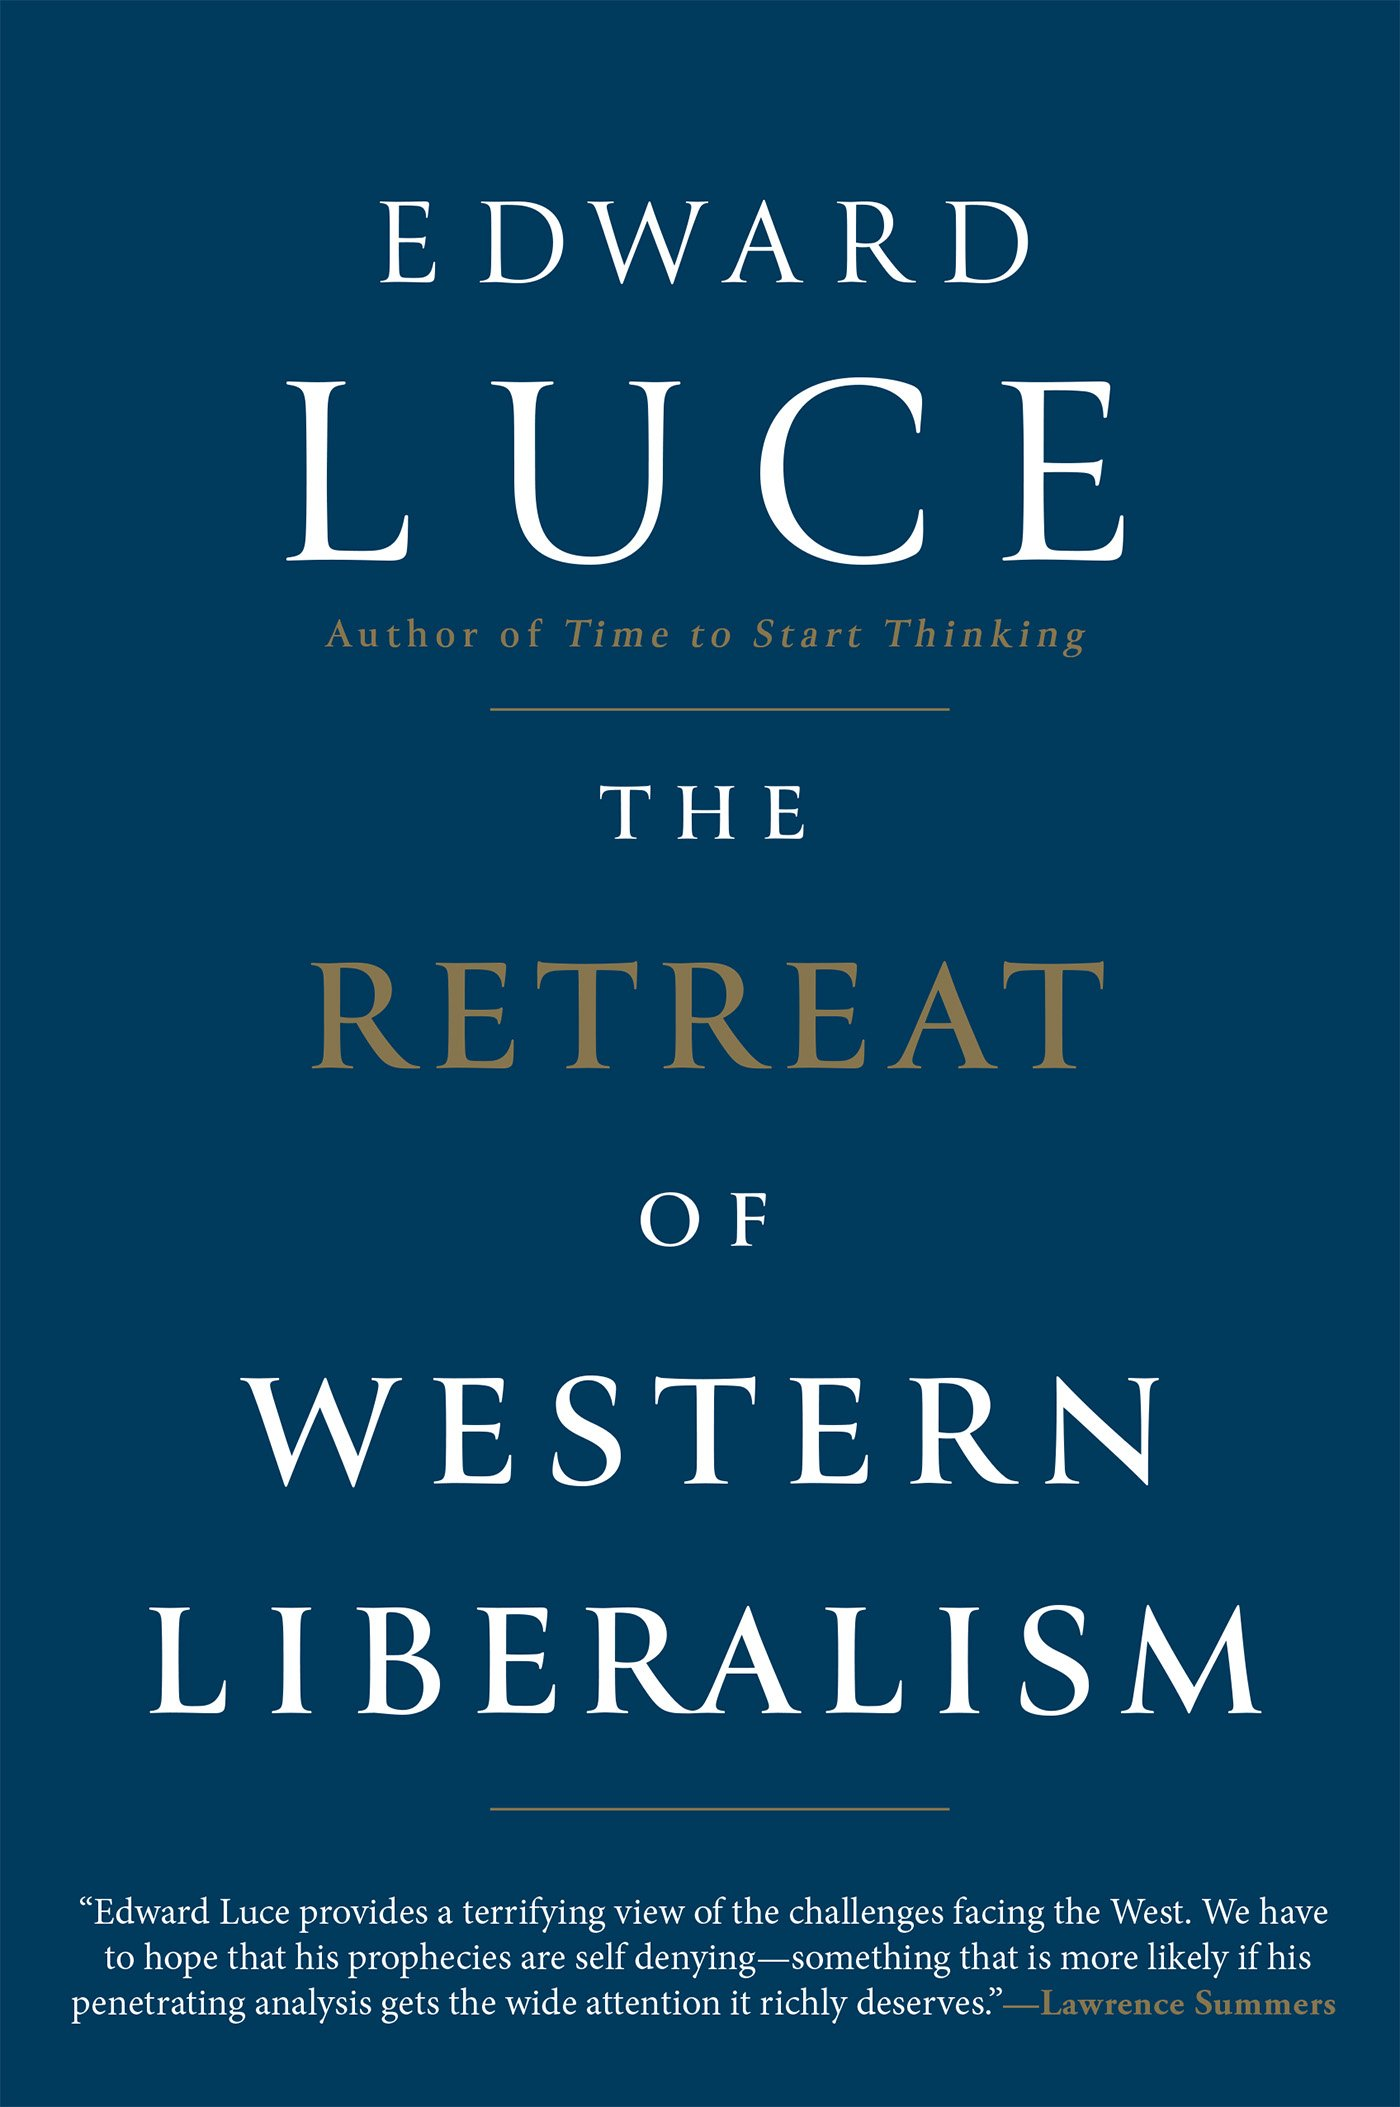 The Retreat of Western Liberalism: Luce, Edward: 9780802127396: Amazon.com: Books